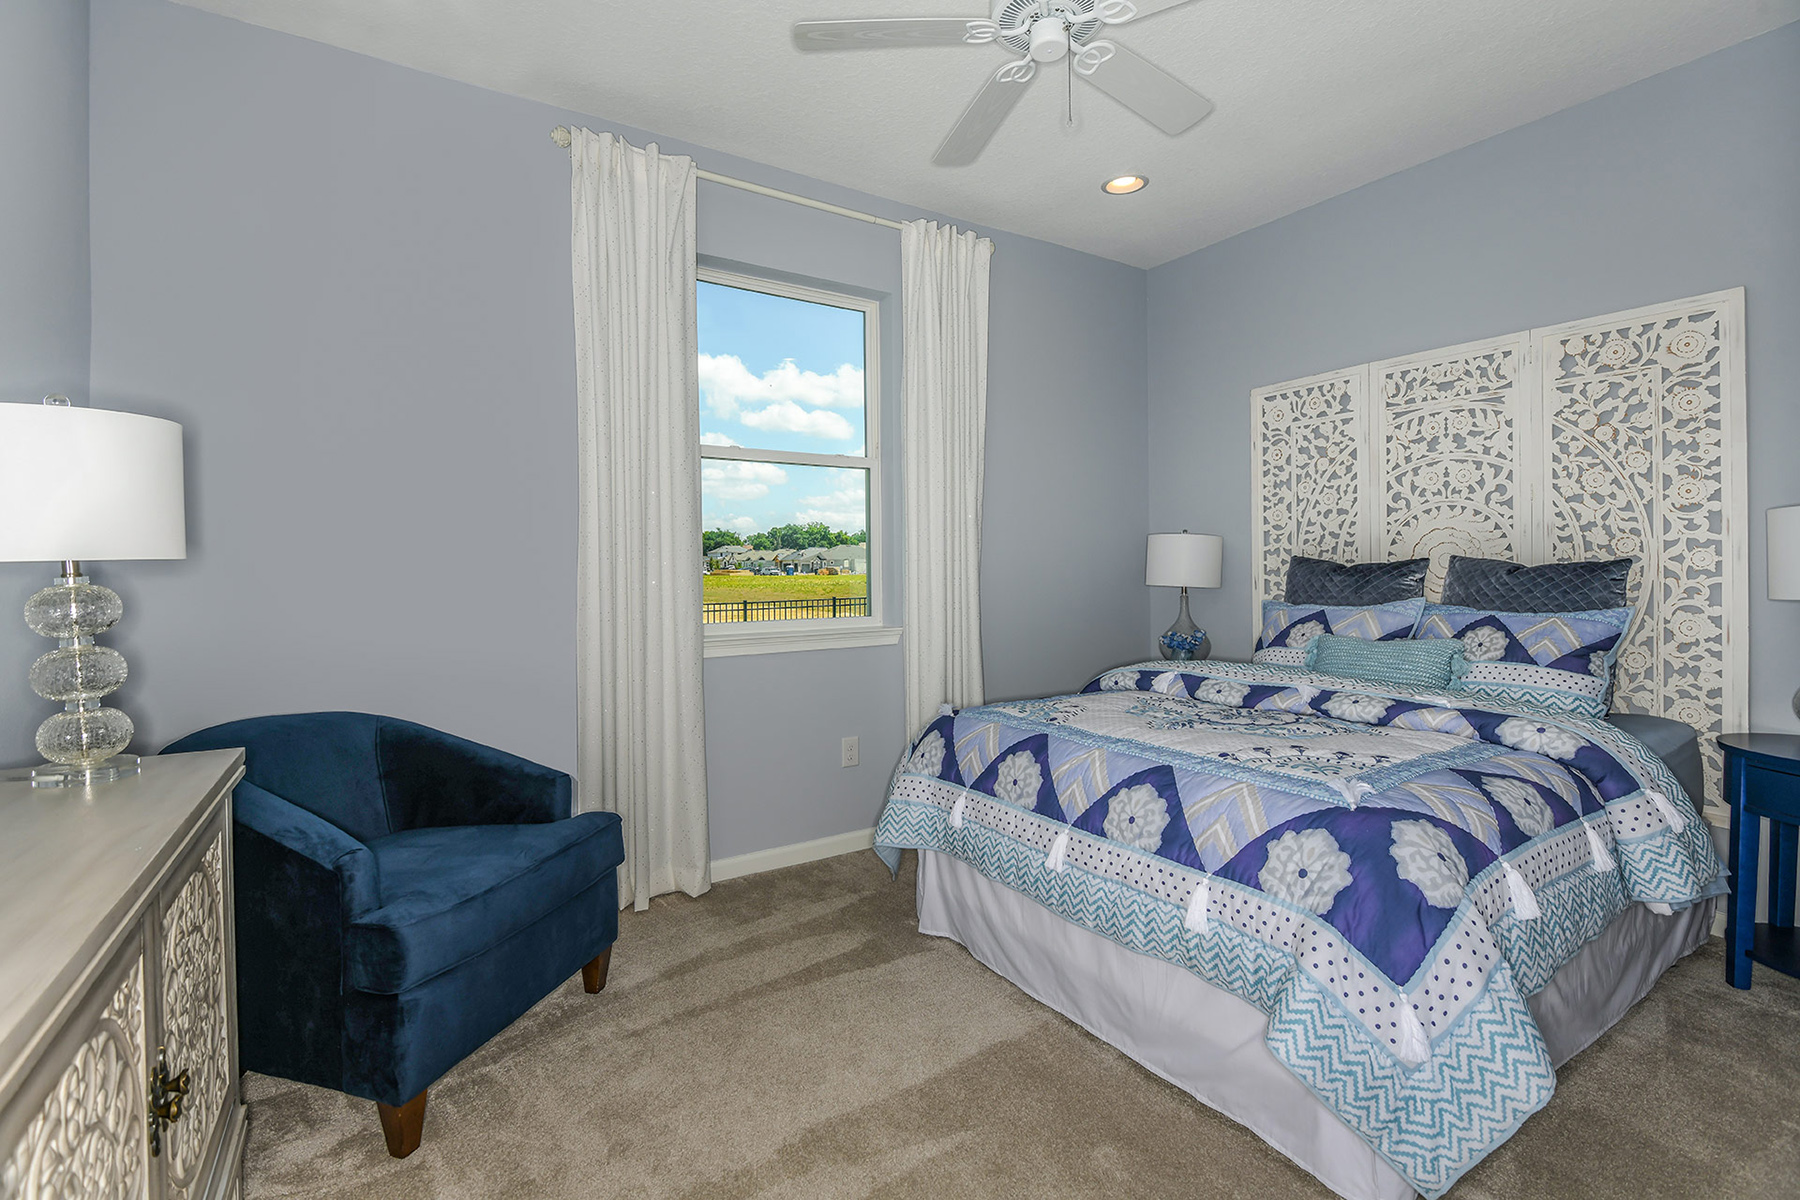 Coquina II Plan Bedroom at Wellen Park - Renaissance in Venice Florida by Mattamy Homes